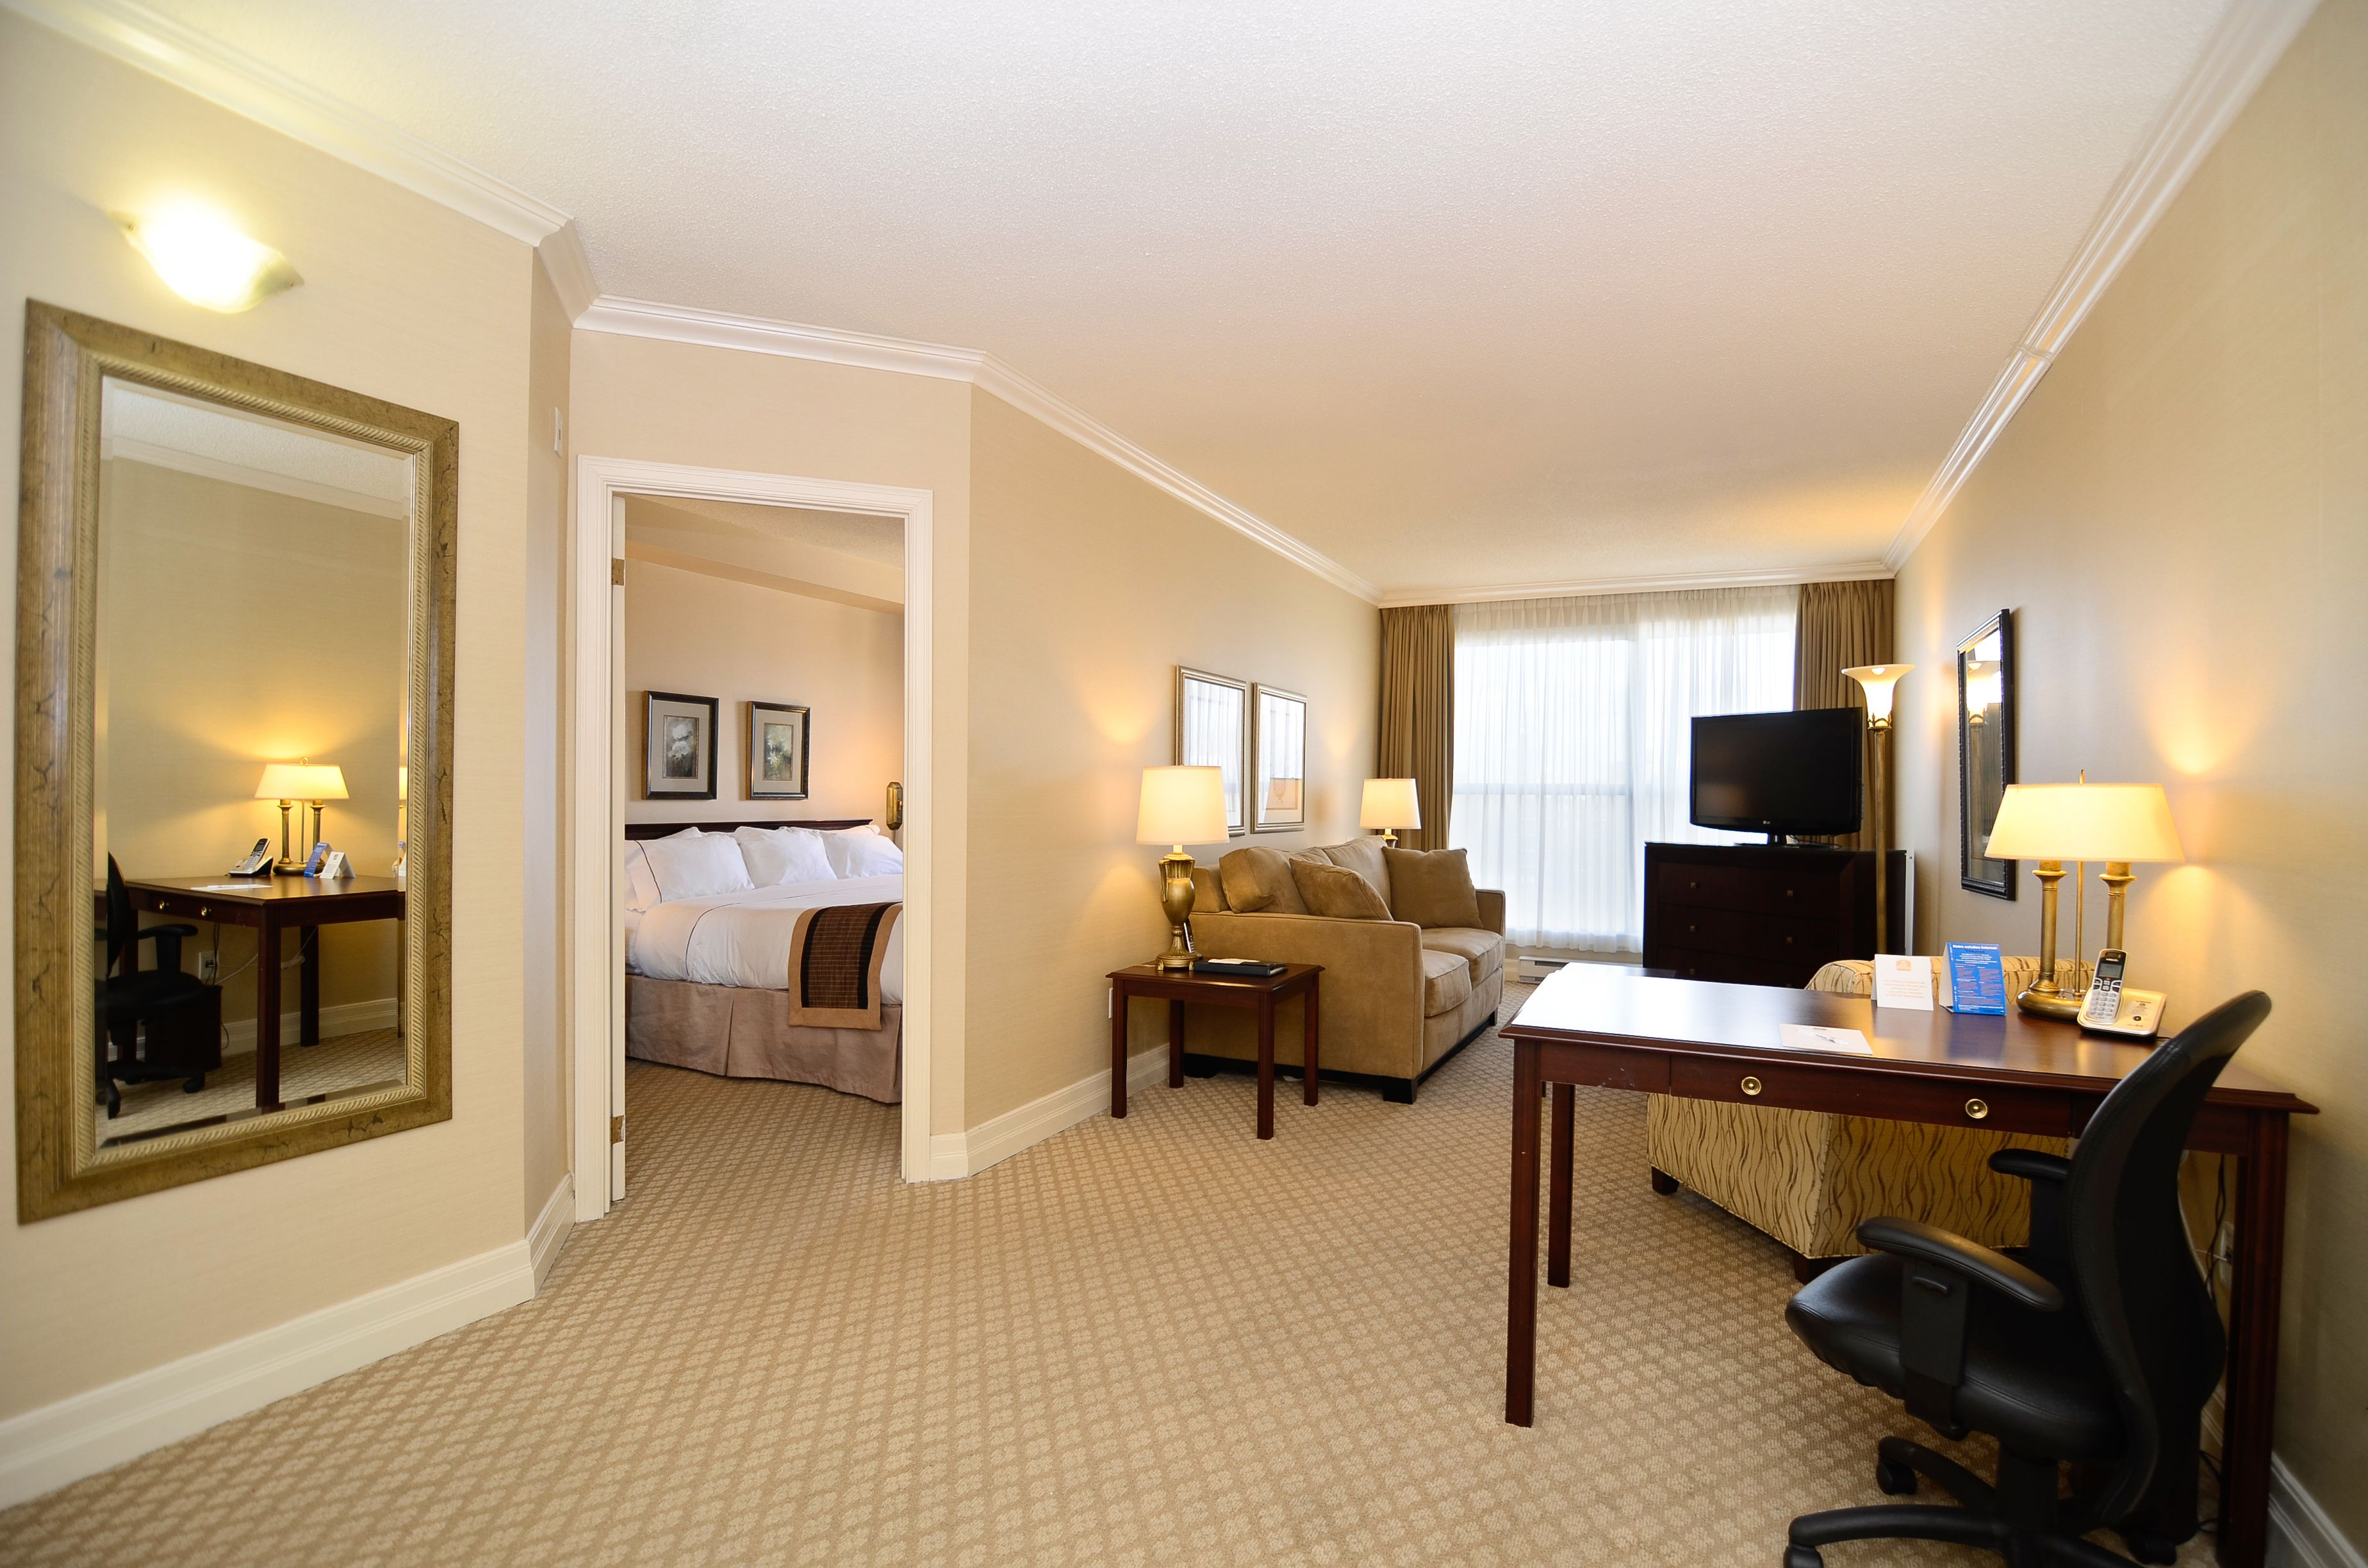 For A Comfortable Stay With Tones Of Value And Authentic Guest